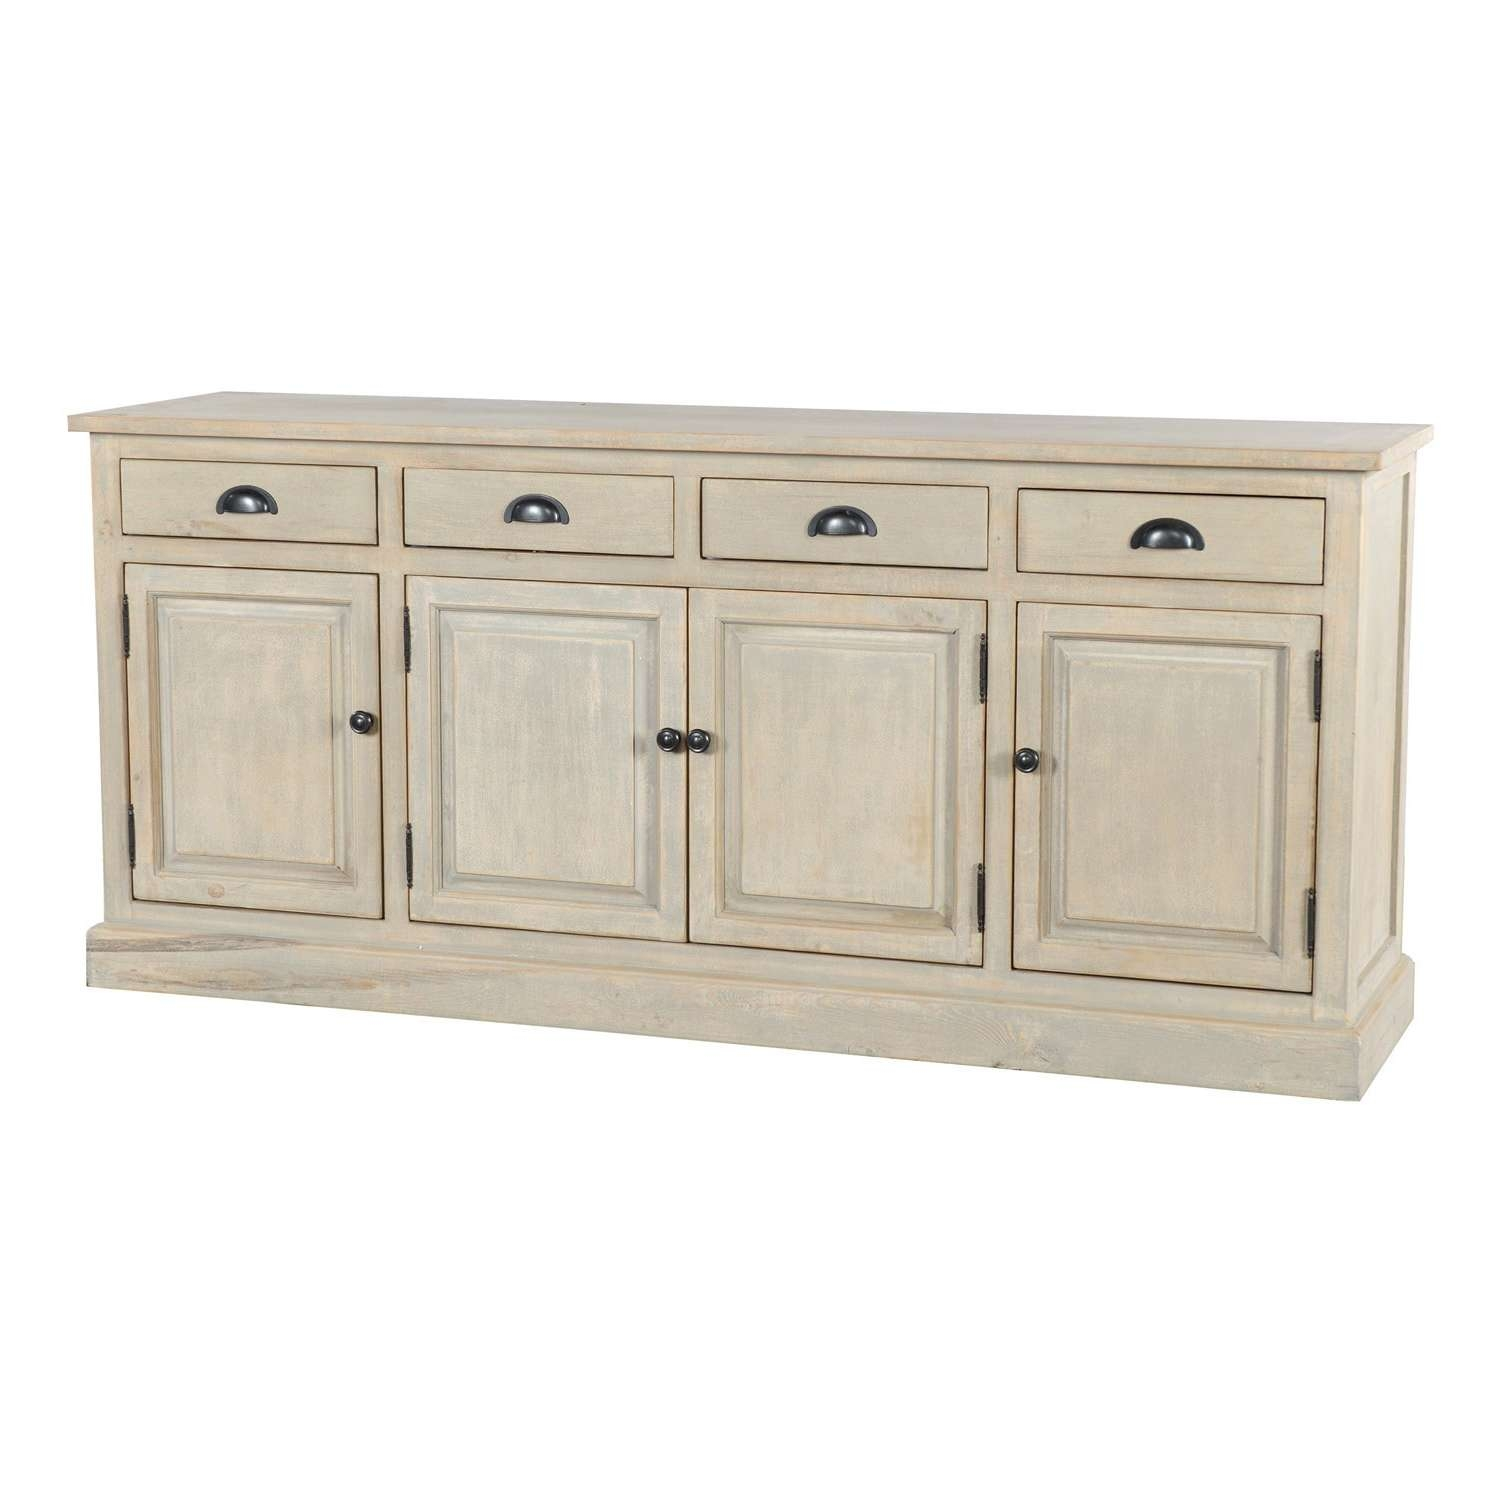 Wilson Reclaimed Wood 79 Inch Sideboardkosas Home – Free Throughout 14 Inch Deep Sideboards (View 3 of 20)